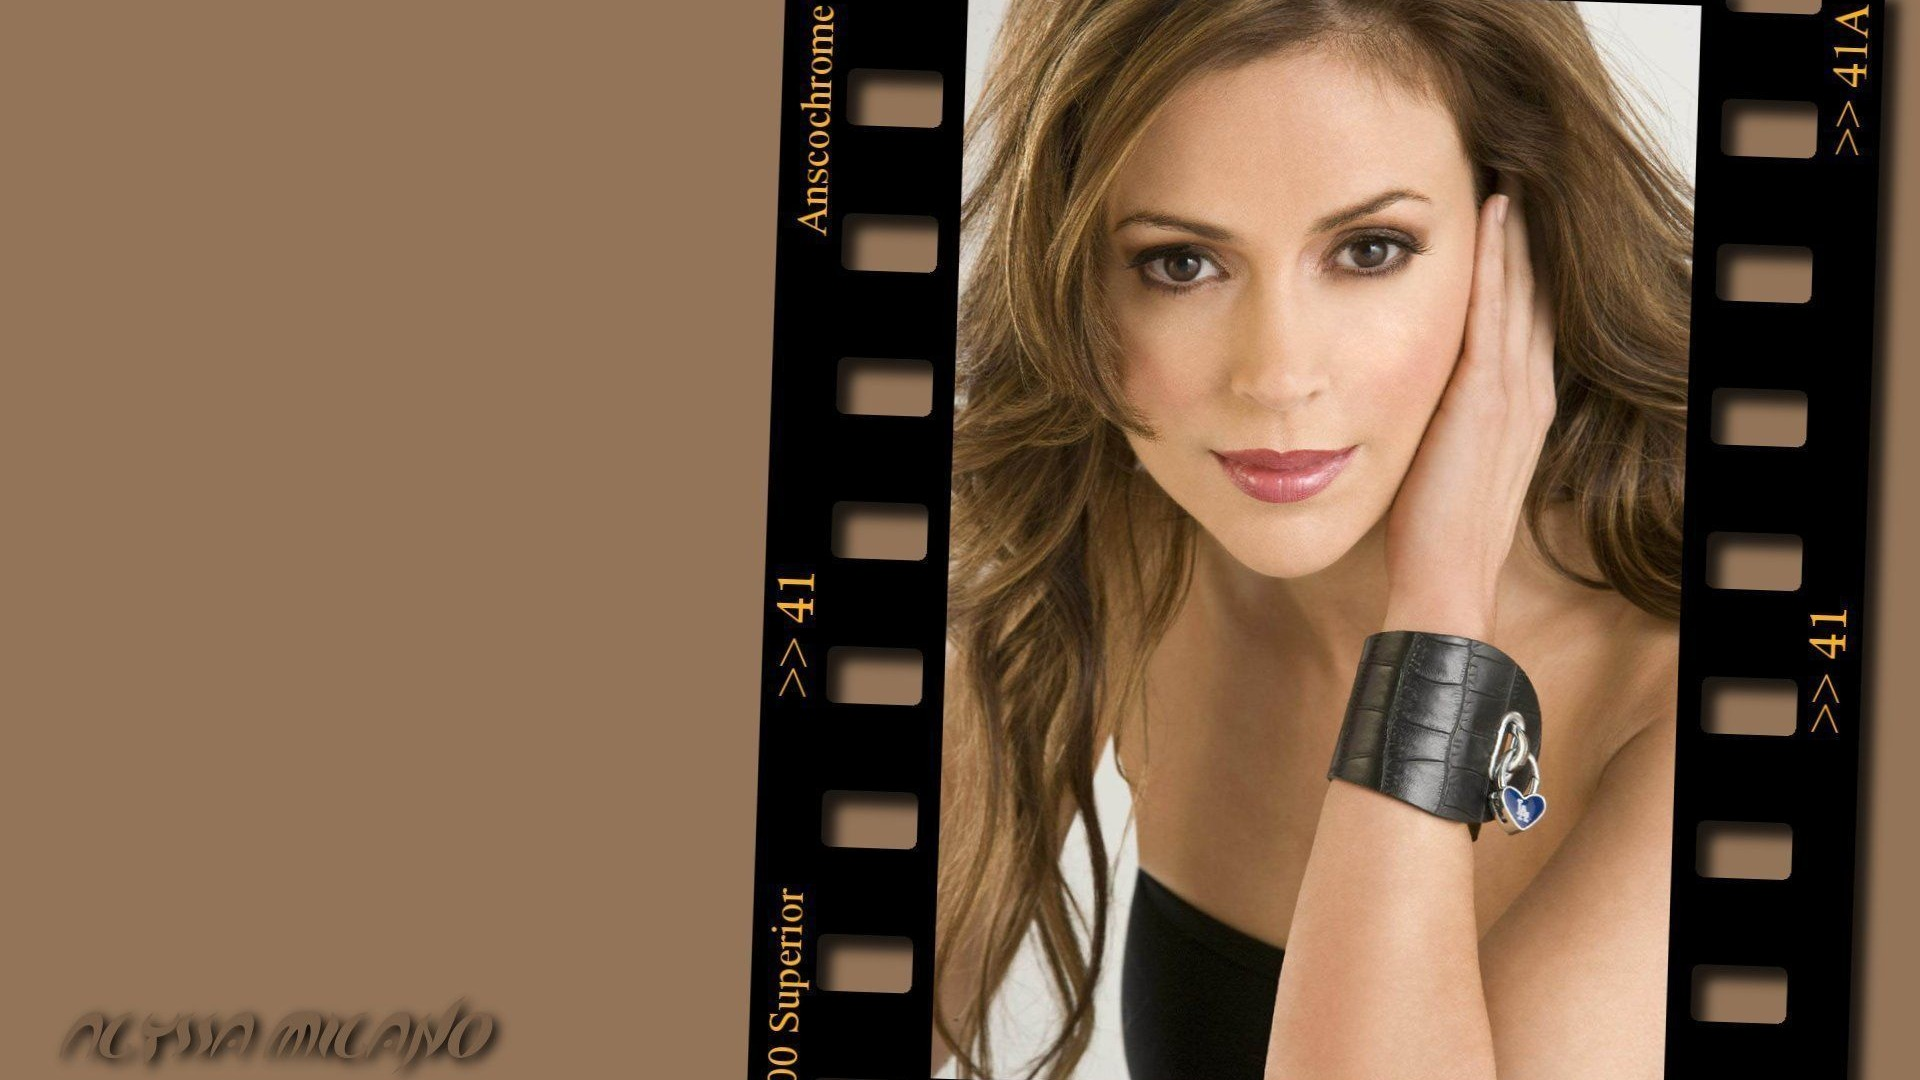 Alyssa Milano #045 - 1920x1080 Wallpapers Pictures Photos Images